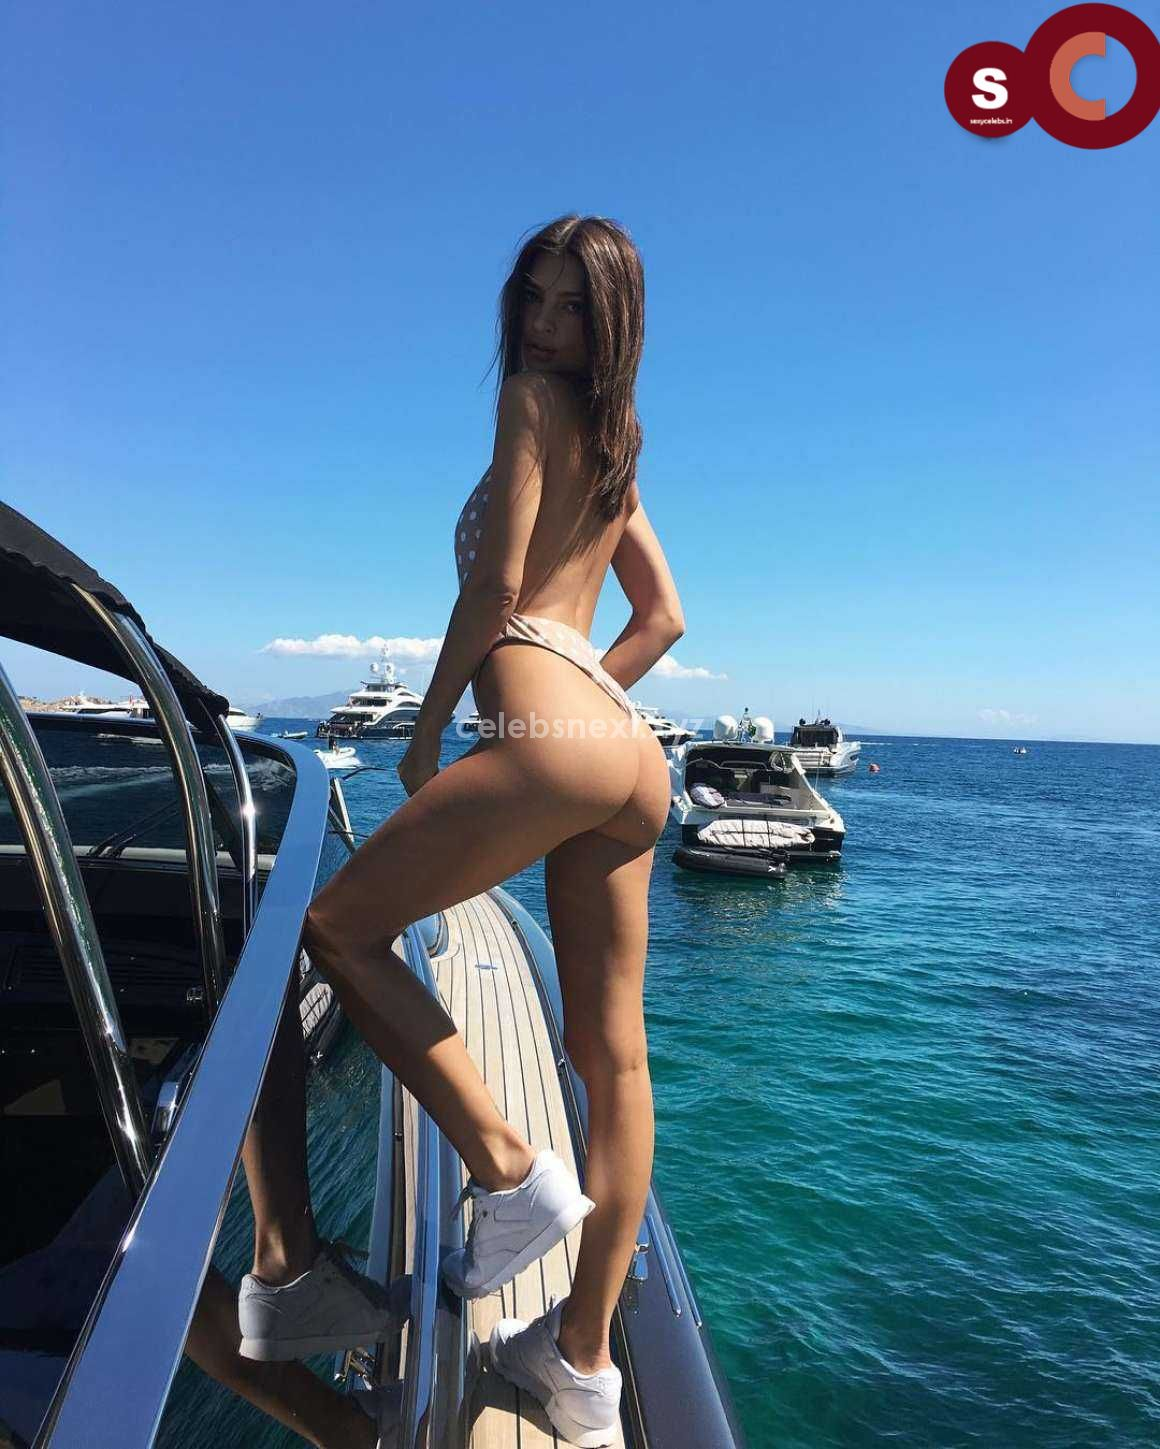 Emily Ratajkowski in Bikini Sexy Smooth small Naked Ass in Thong Bikini July 2018 ~ CelebsNext.xyz Exclusive Celebrity Pics